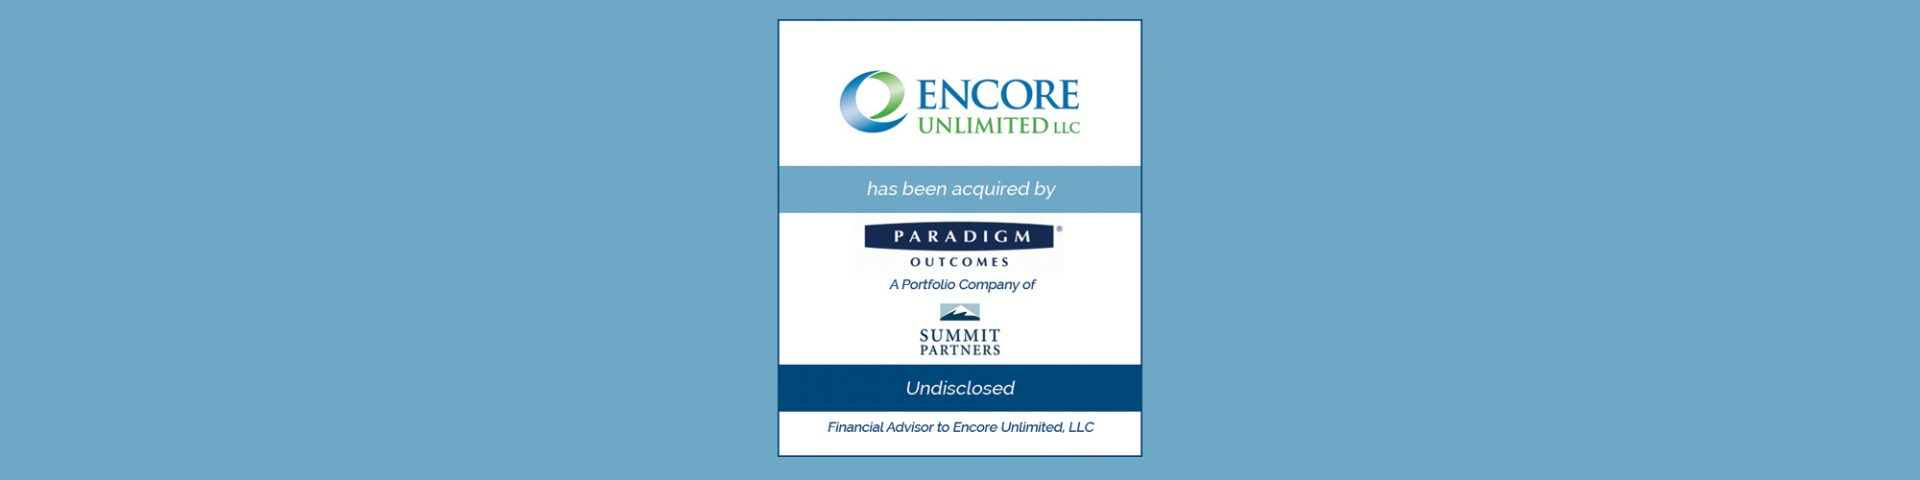 Paradigm Outcomes Acquires Encore Unlimited | Bailey Southwell & Co.